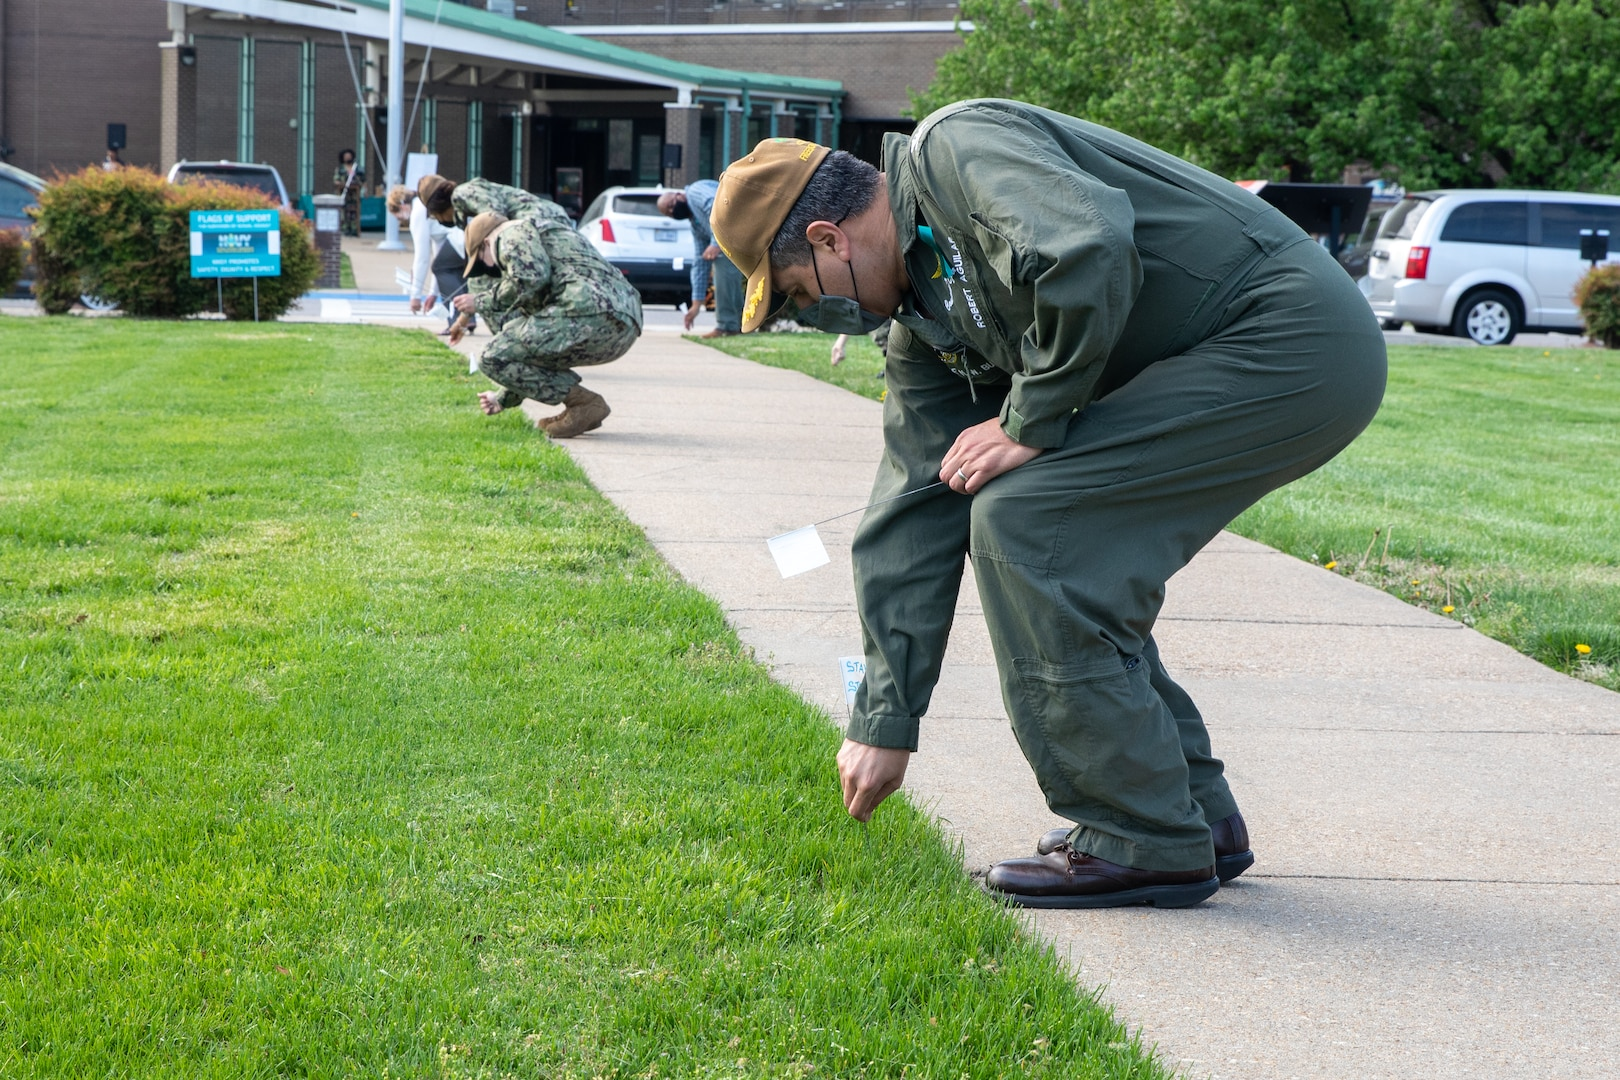 USS George H.W. Bush (CVN 77) Commanding Officer Capt. Robert Aguilar plants a flag of support in the ground outside of Norfolk Naval Shipyard's Engineering and Management Building during the shipyard's Sexual Assault Awareness and Prevention Month (SAAPM) kickoff event April 9.